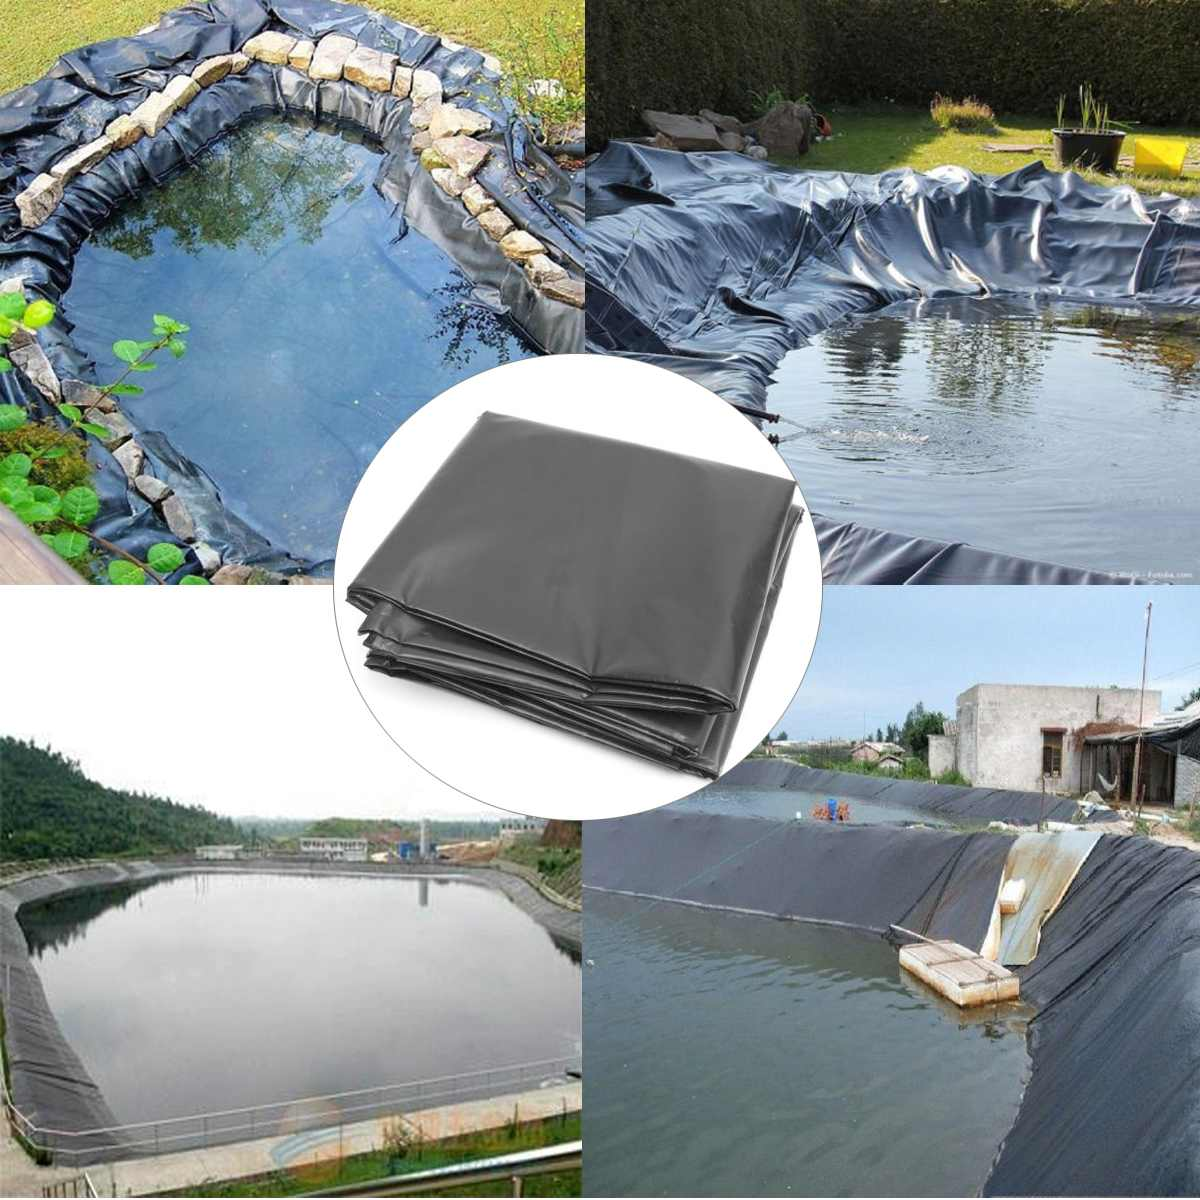 HDPE Fish Pond Liner Garden Pond Landscaping Pool Reinforced Thick Heavy Duty Waterproof Membrane Liner Cloth 7x7m / 5x5m / 4x4m